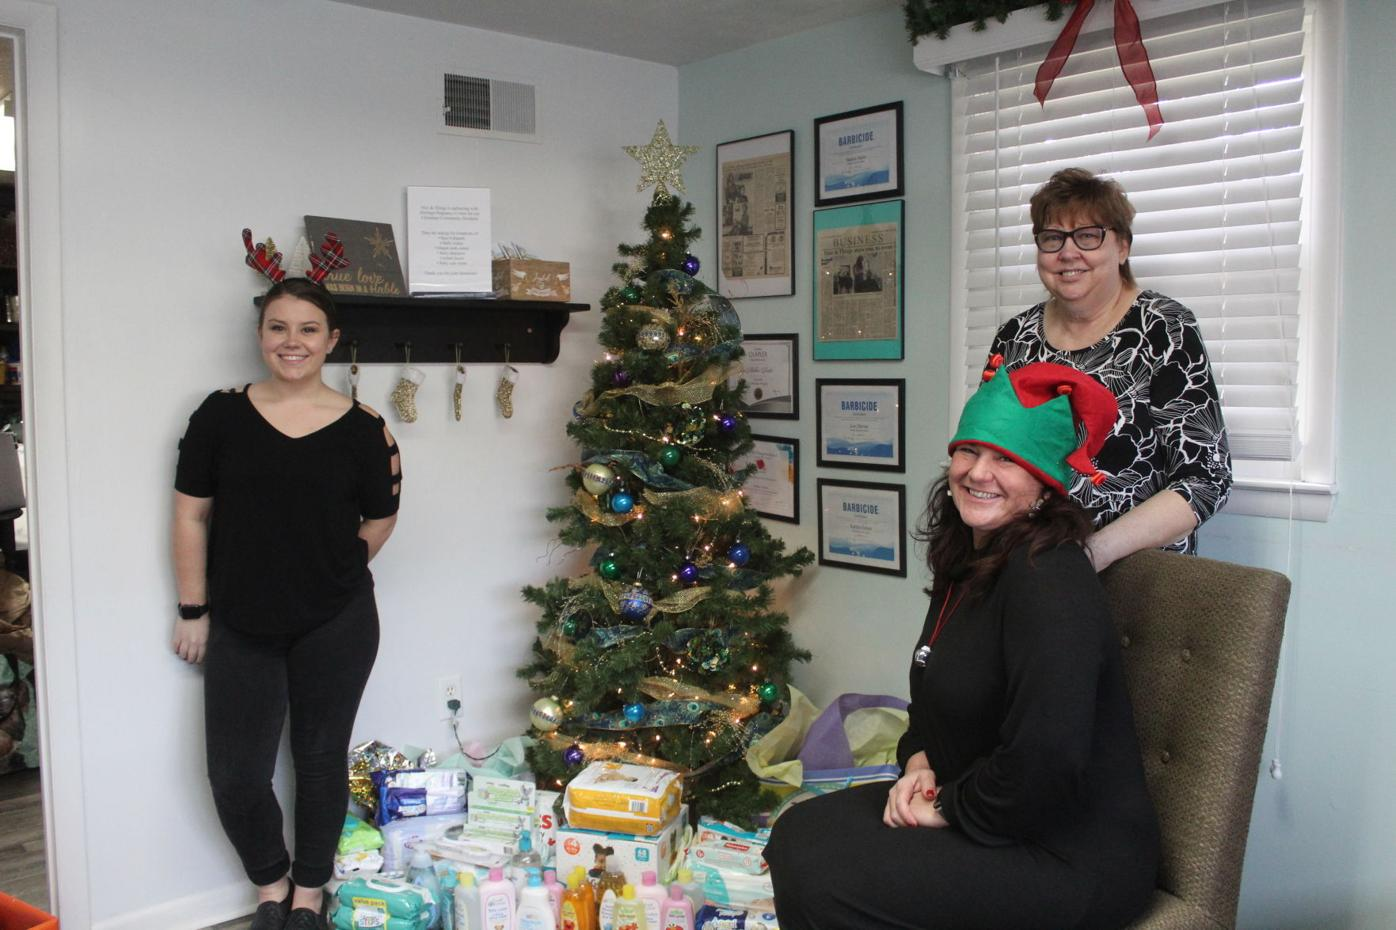 Hair & Things makes Christmas donation to Heritage Pregnancy & Family Health Center